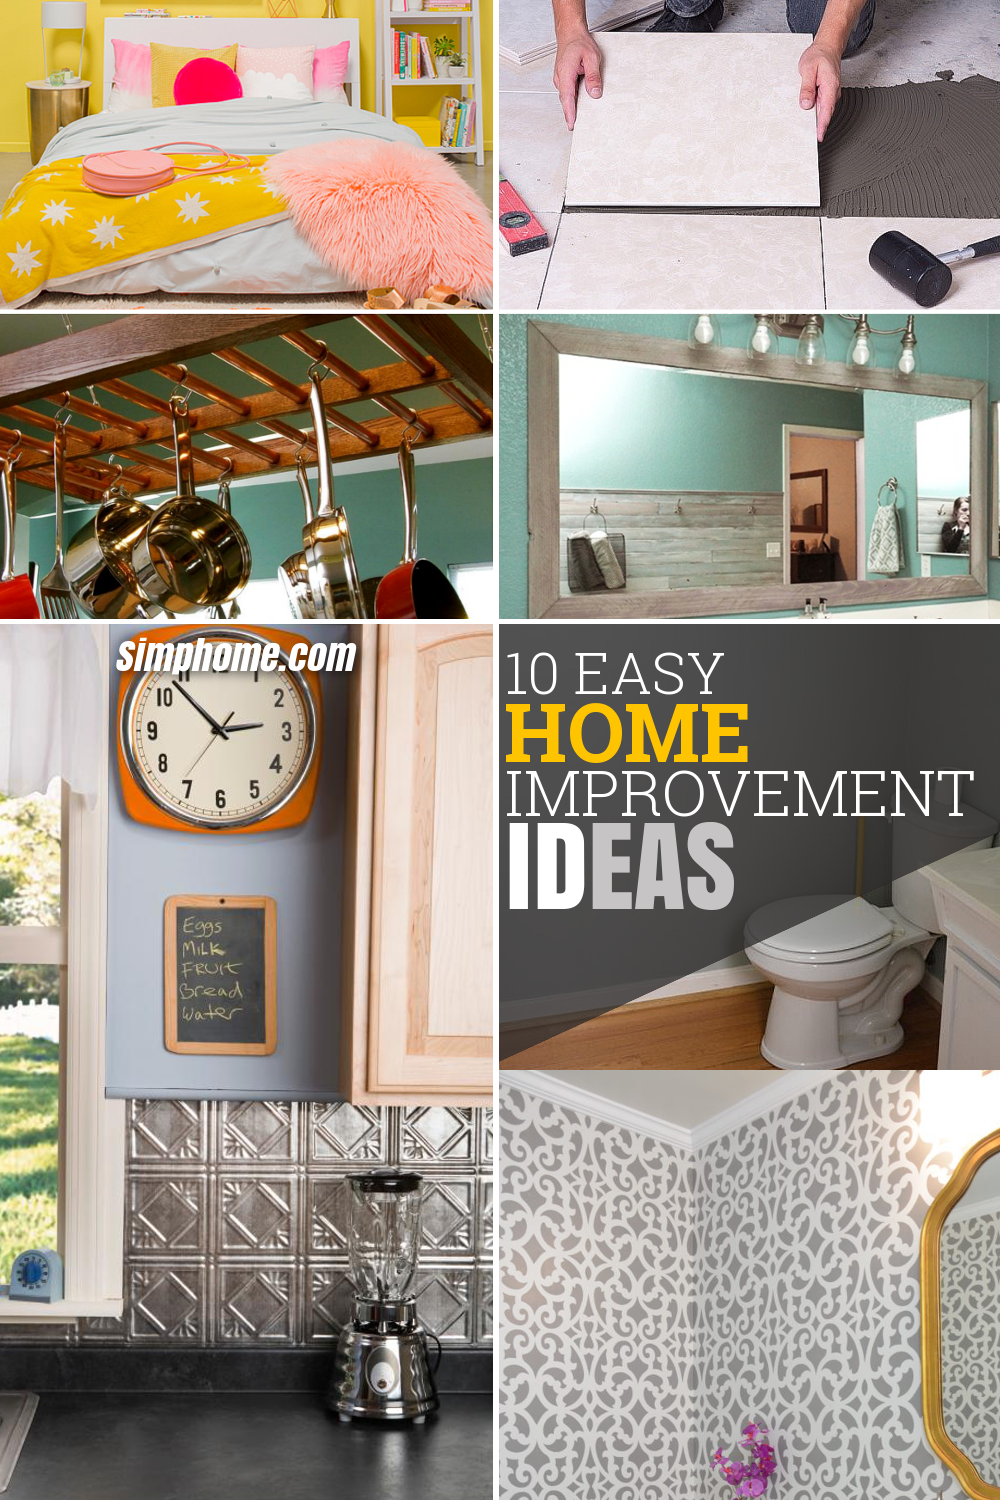 Easy Home Improvement Ideas Via Simphome com pinterest image long